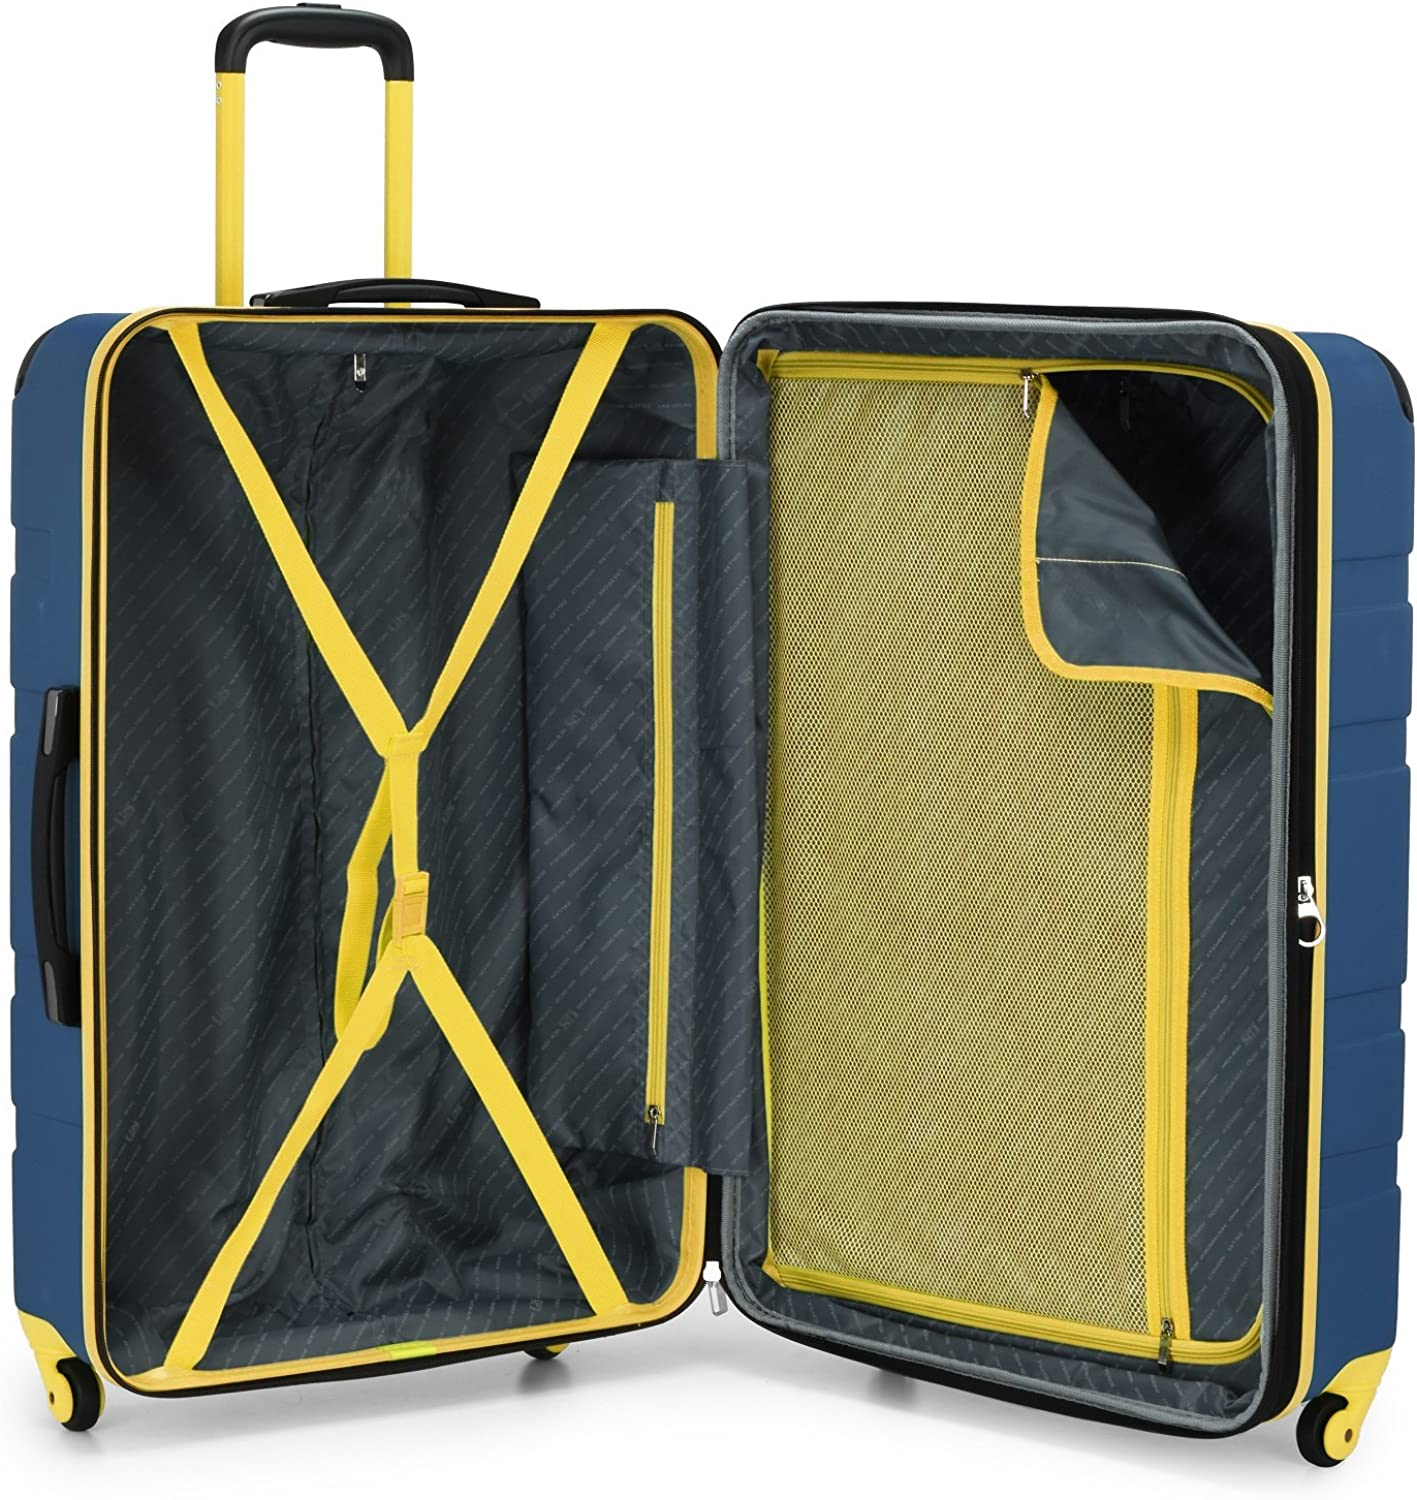 U.S Traveler Sky High Expandable Hardside Spinner Luggage